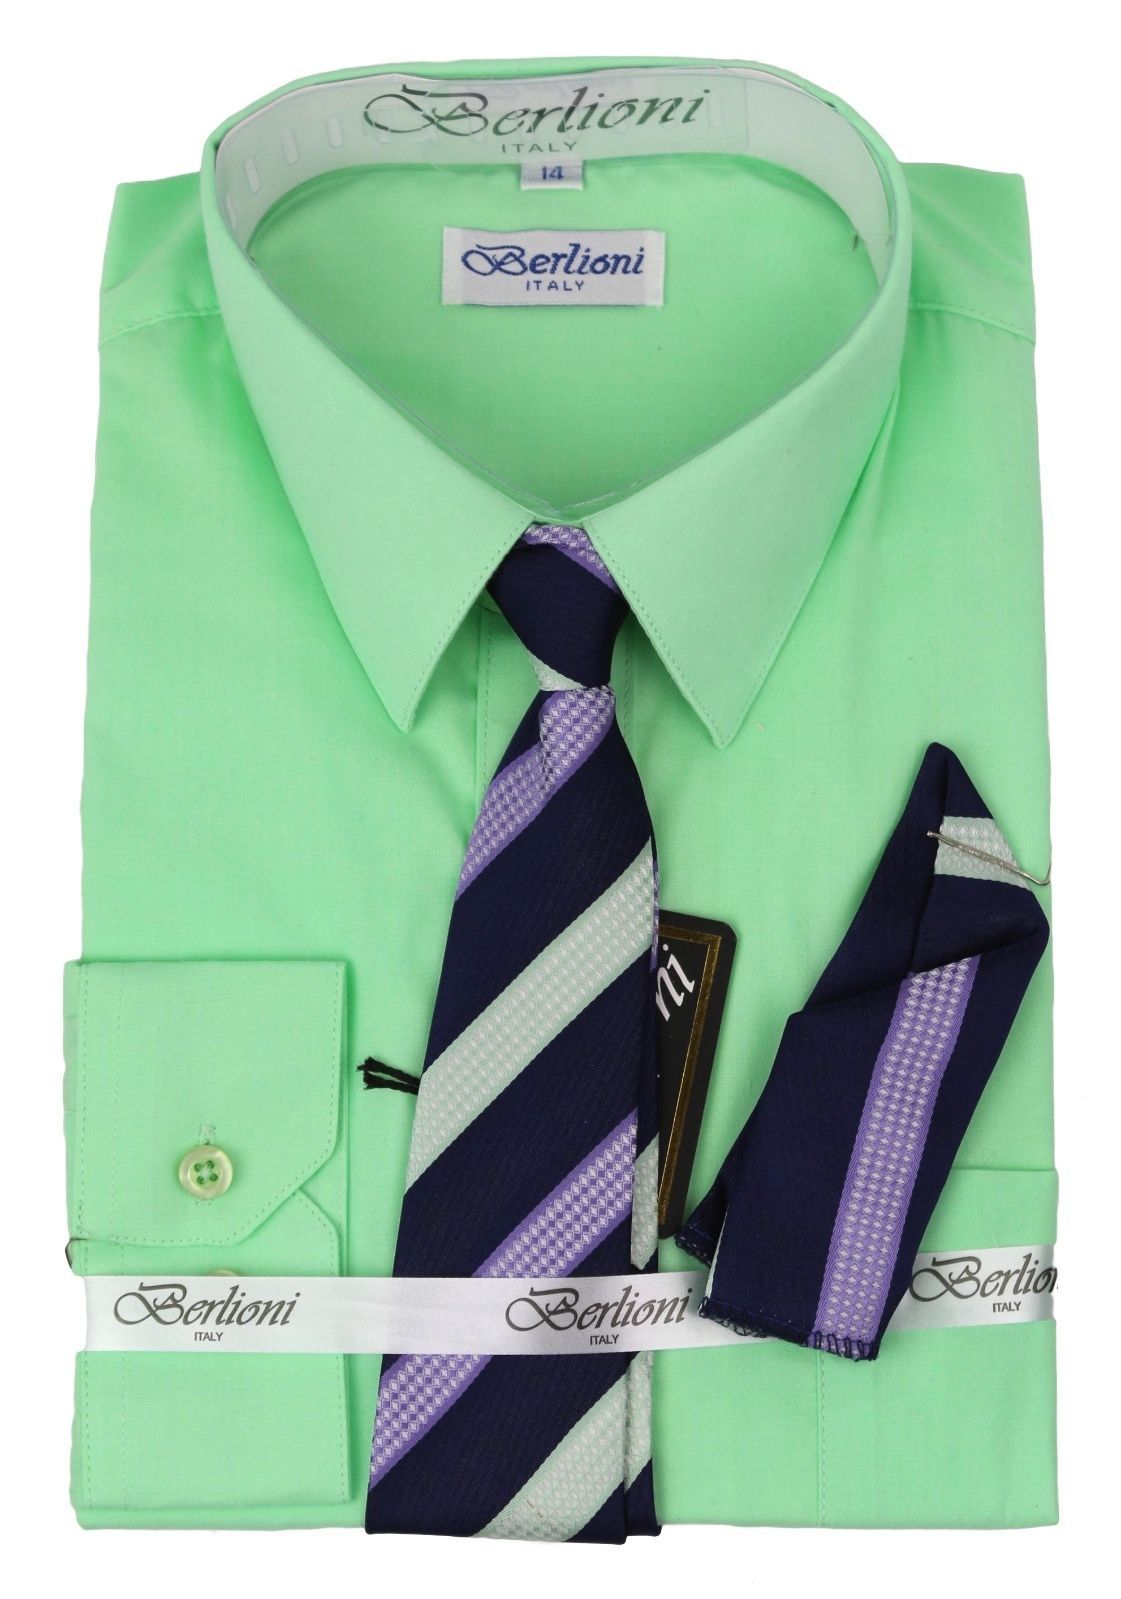 BERLIONI ITALY TODDLERS KIDS BOYS LONG SLEEVE DRESS SHIRT SET TIE & HANKY LIME